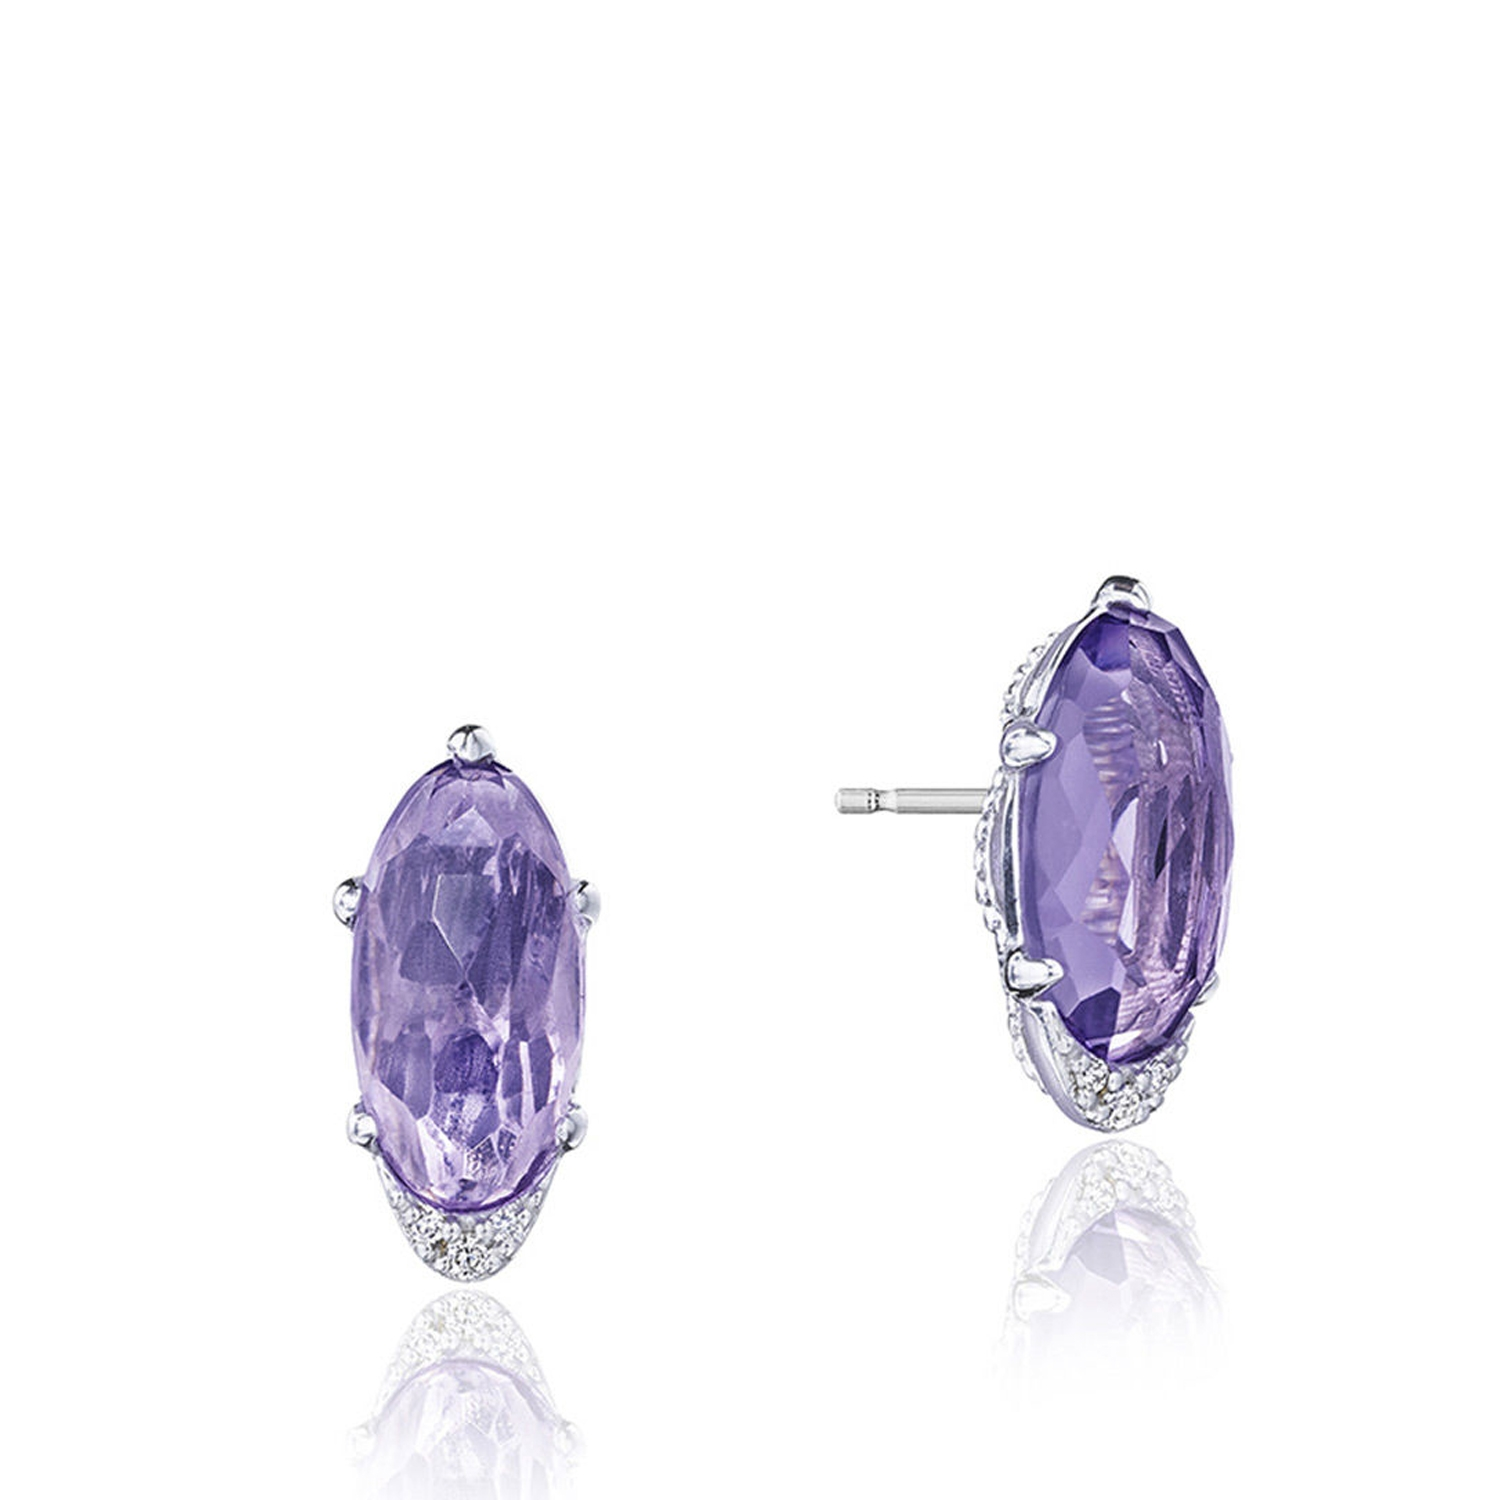 Tacori SE24801 Oval-Shaped Gem Earrings with Amethyst